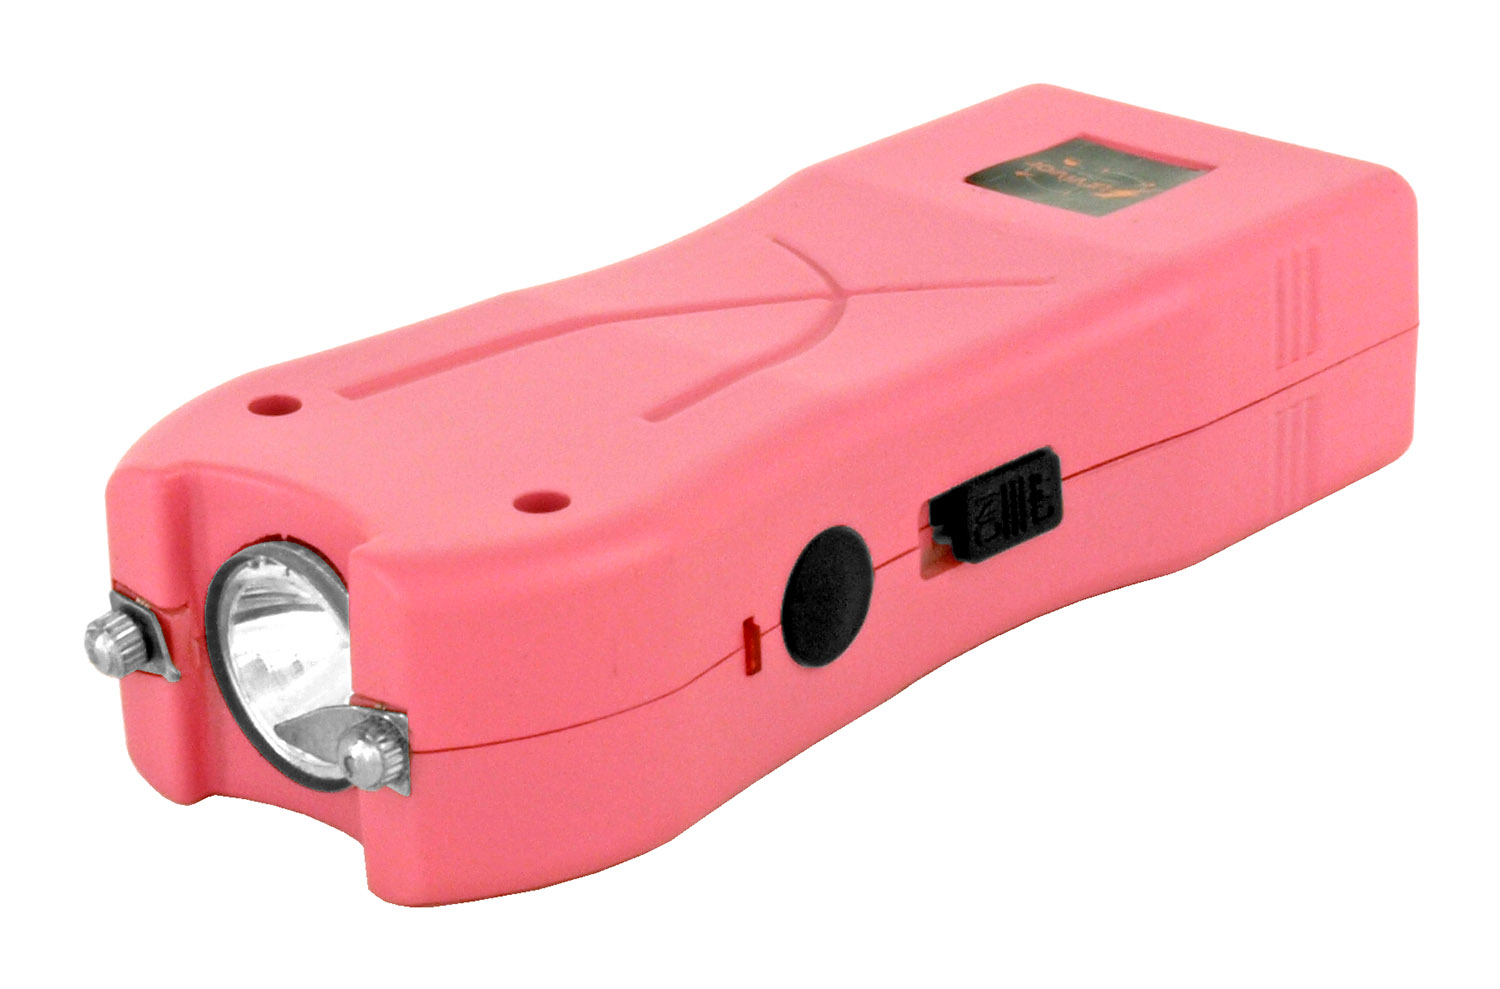 Survivor Multi-Functional Stun Gun with LED Flashlight - Pink